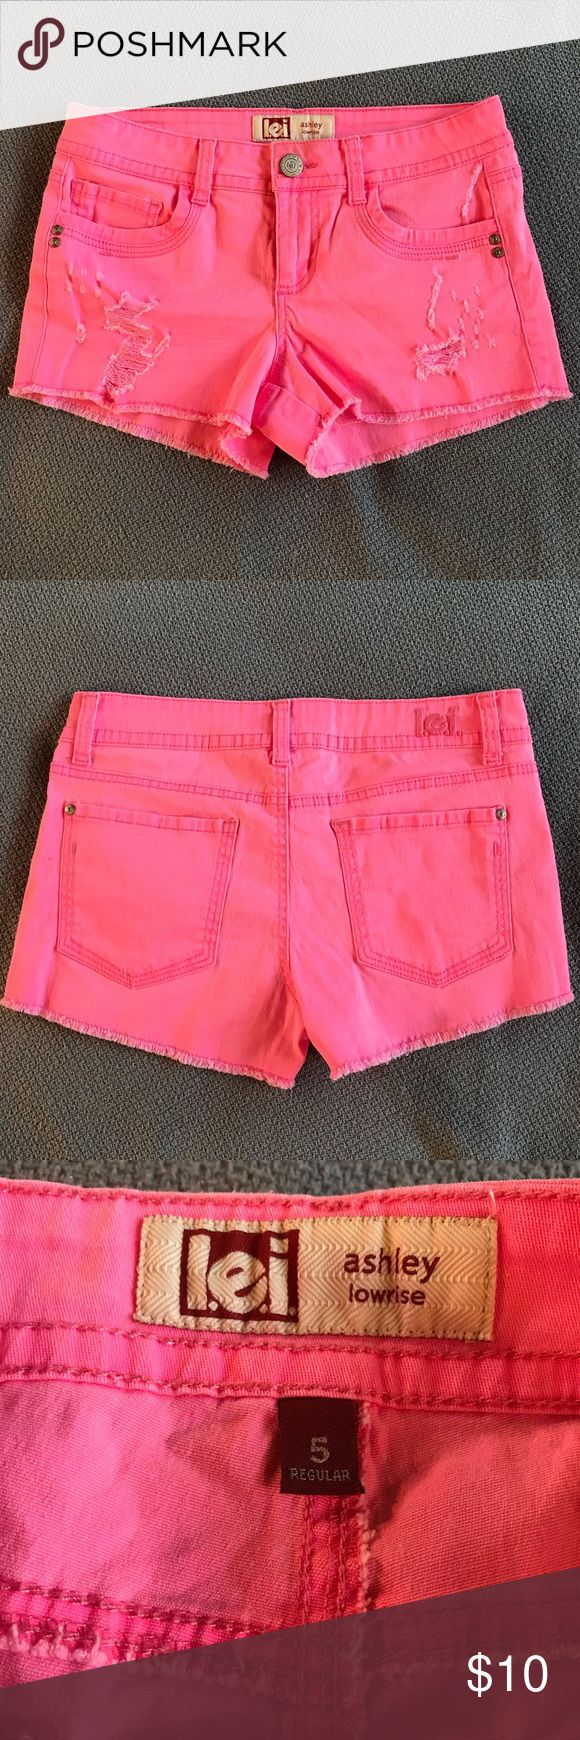 """Distressed Hot Pink Shorts Hot pink shorts in excellent lightly used condition. 2"""" inseam. lei Shorts"""